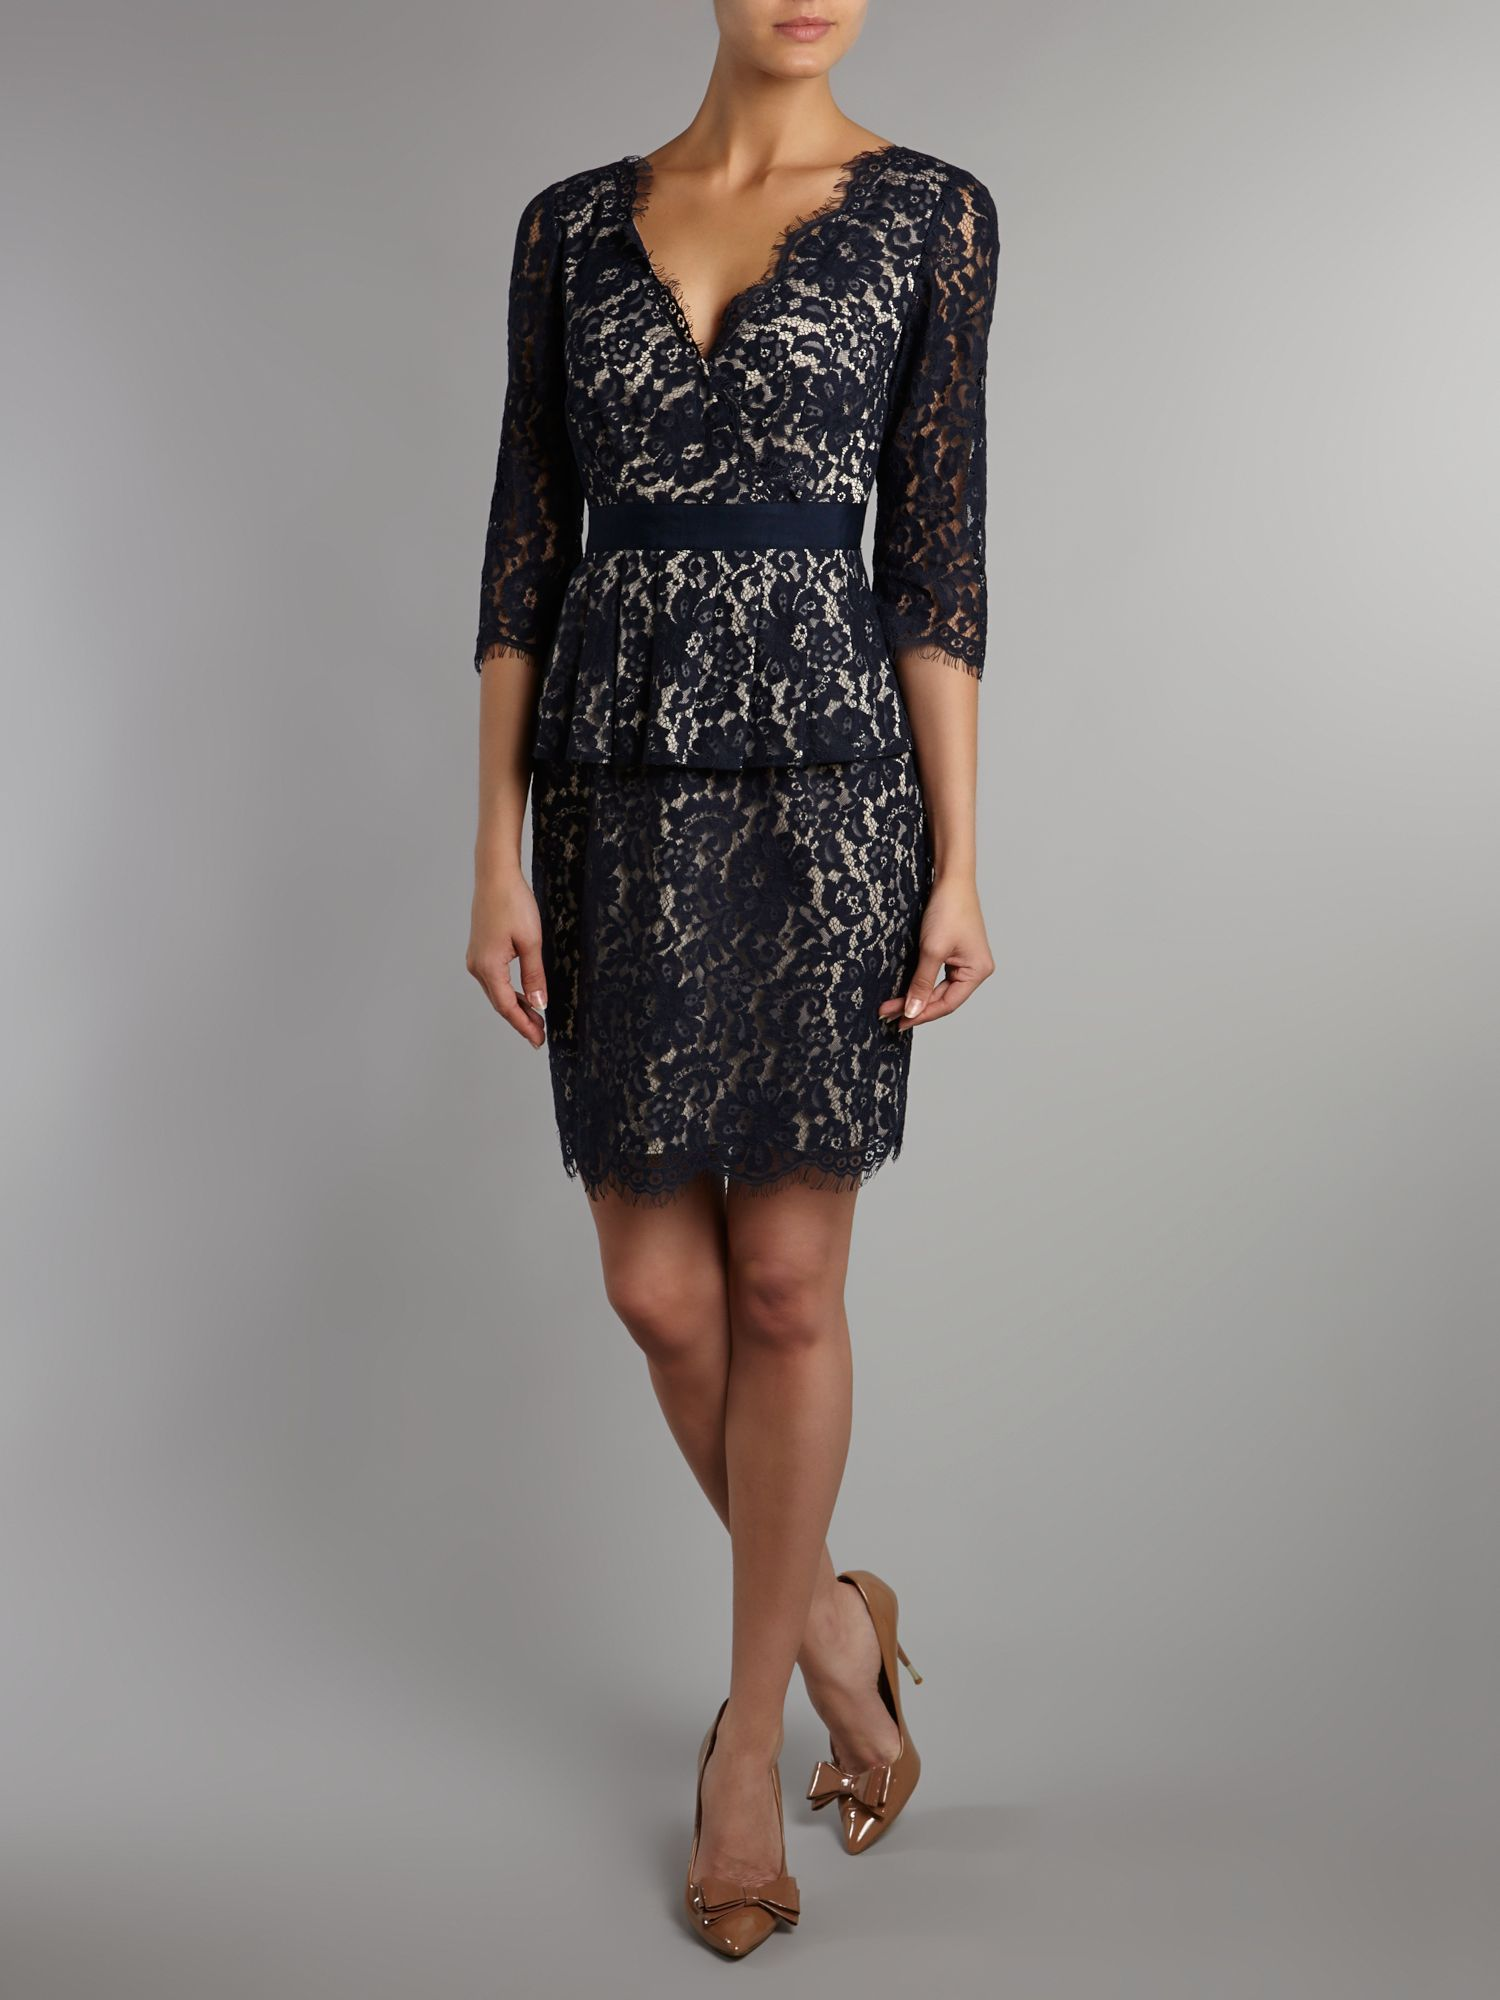 Eliza J Lace Fit Amp Flare Dress In Black Lyst